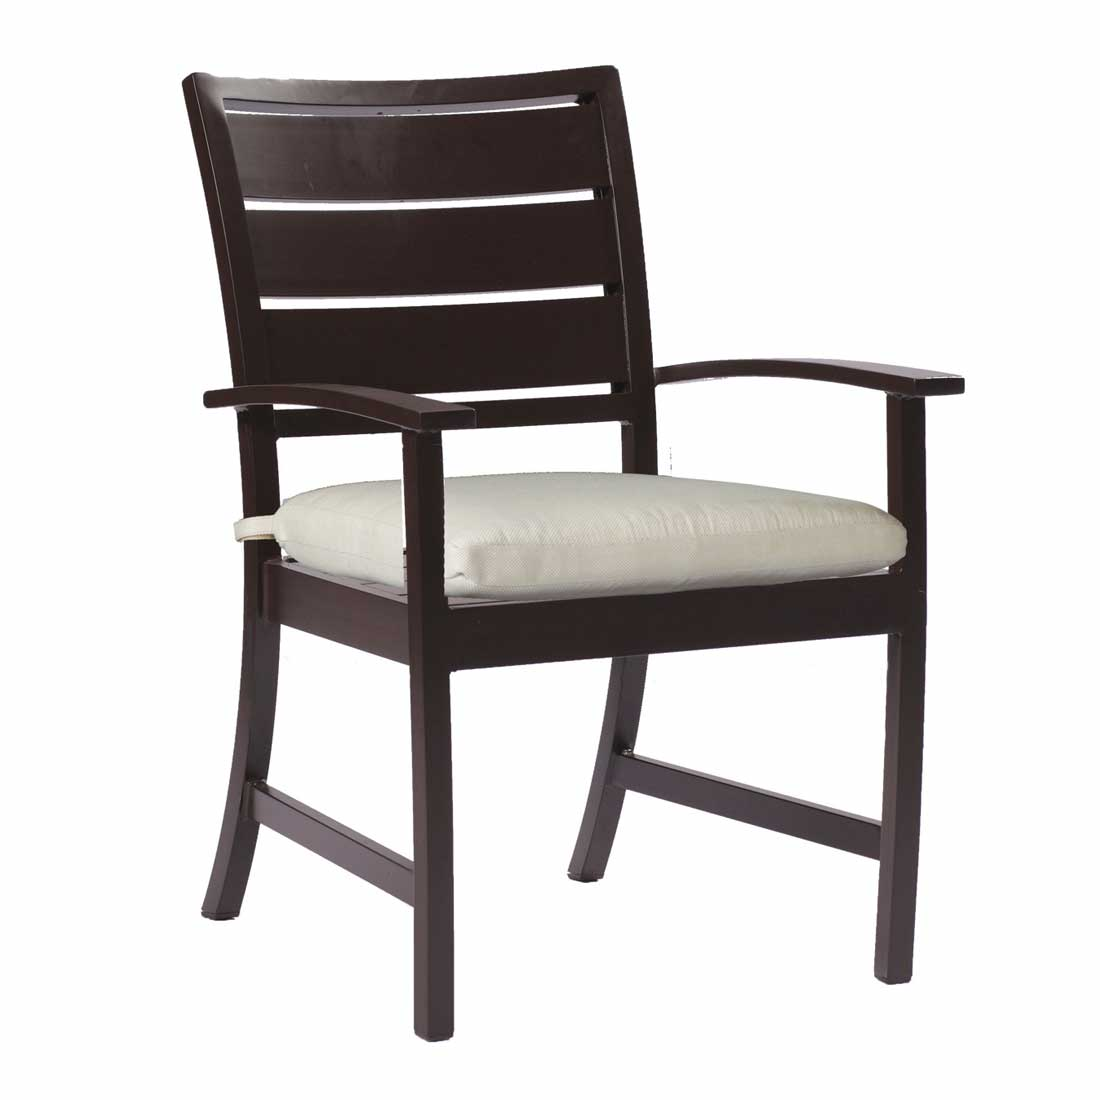 Outdoor Furniture Chairs 28 Images Outdoor Adirondack